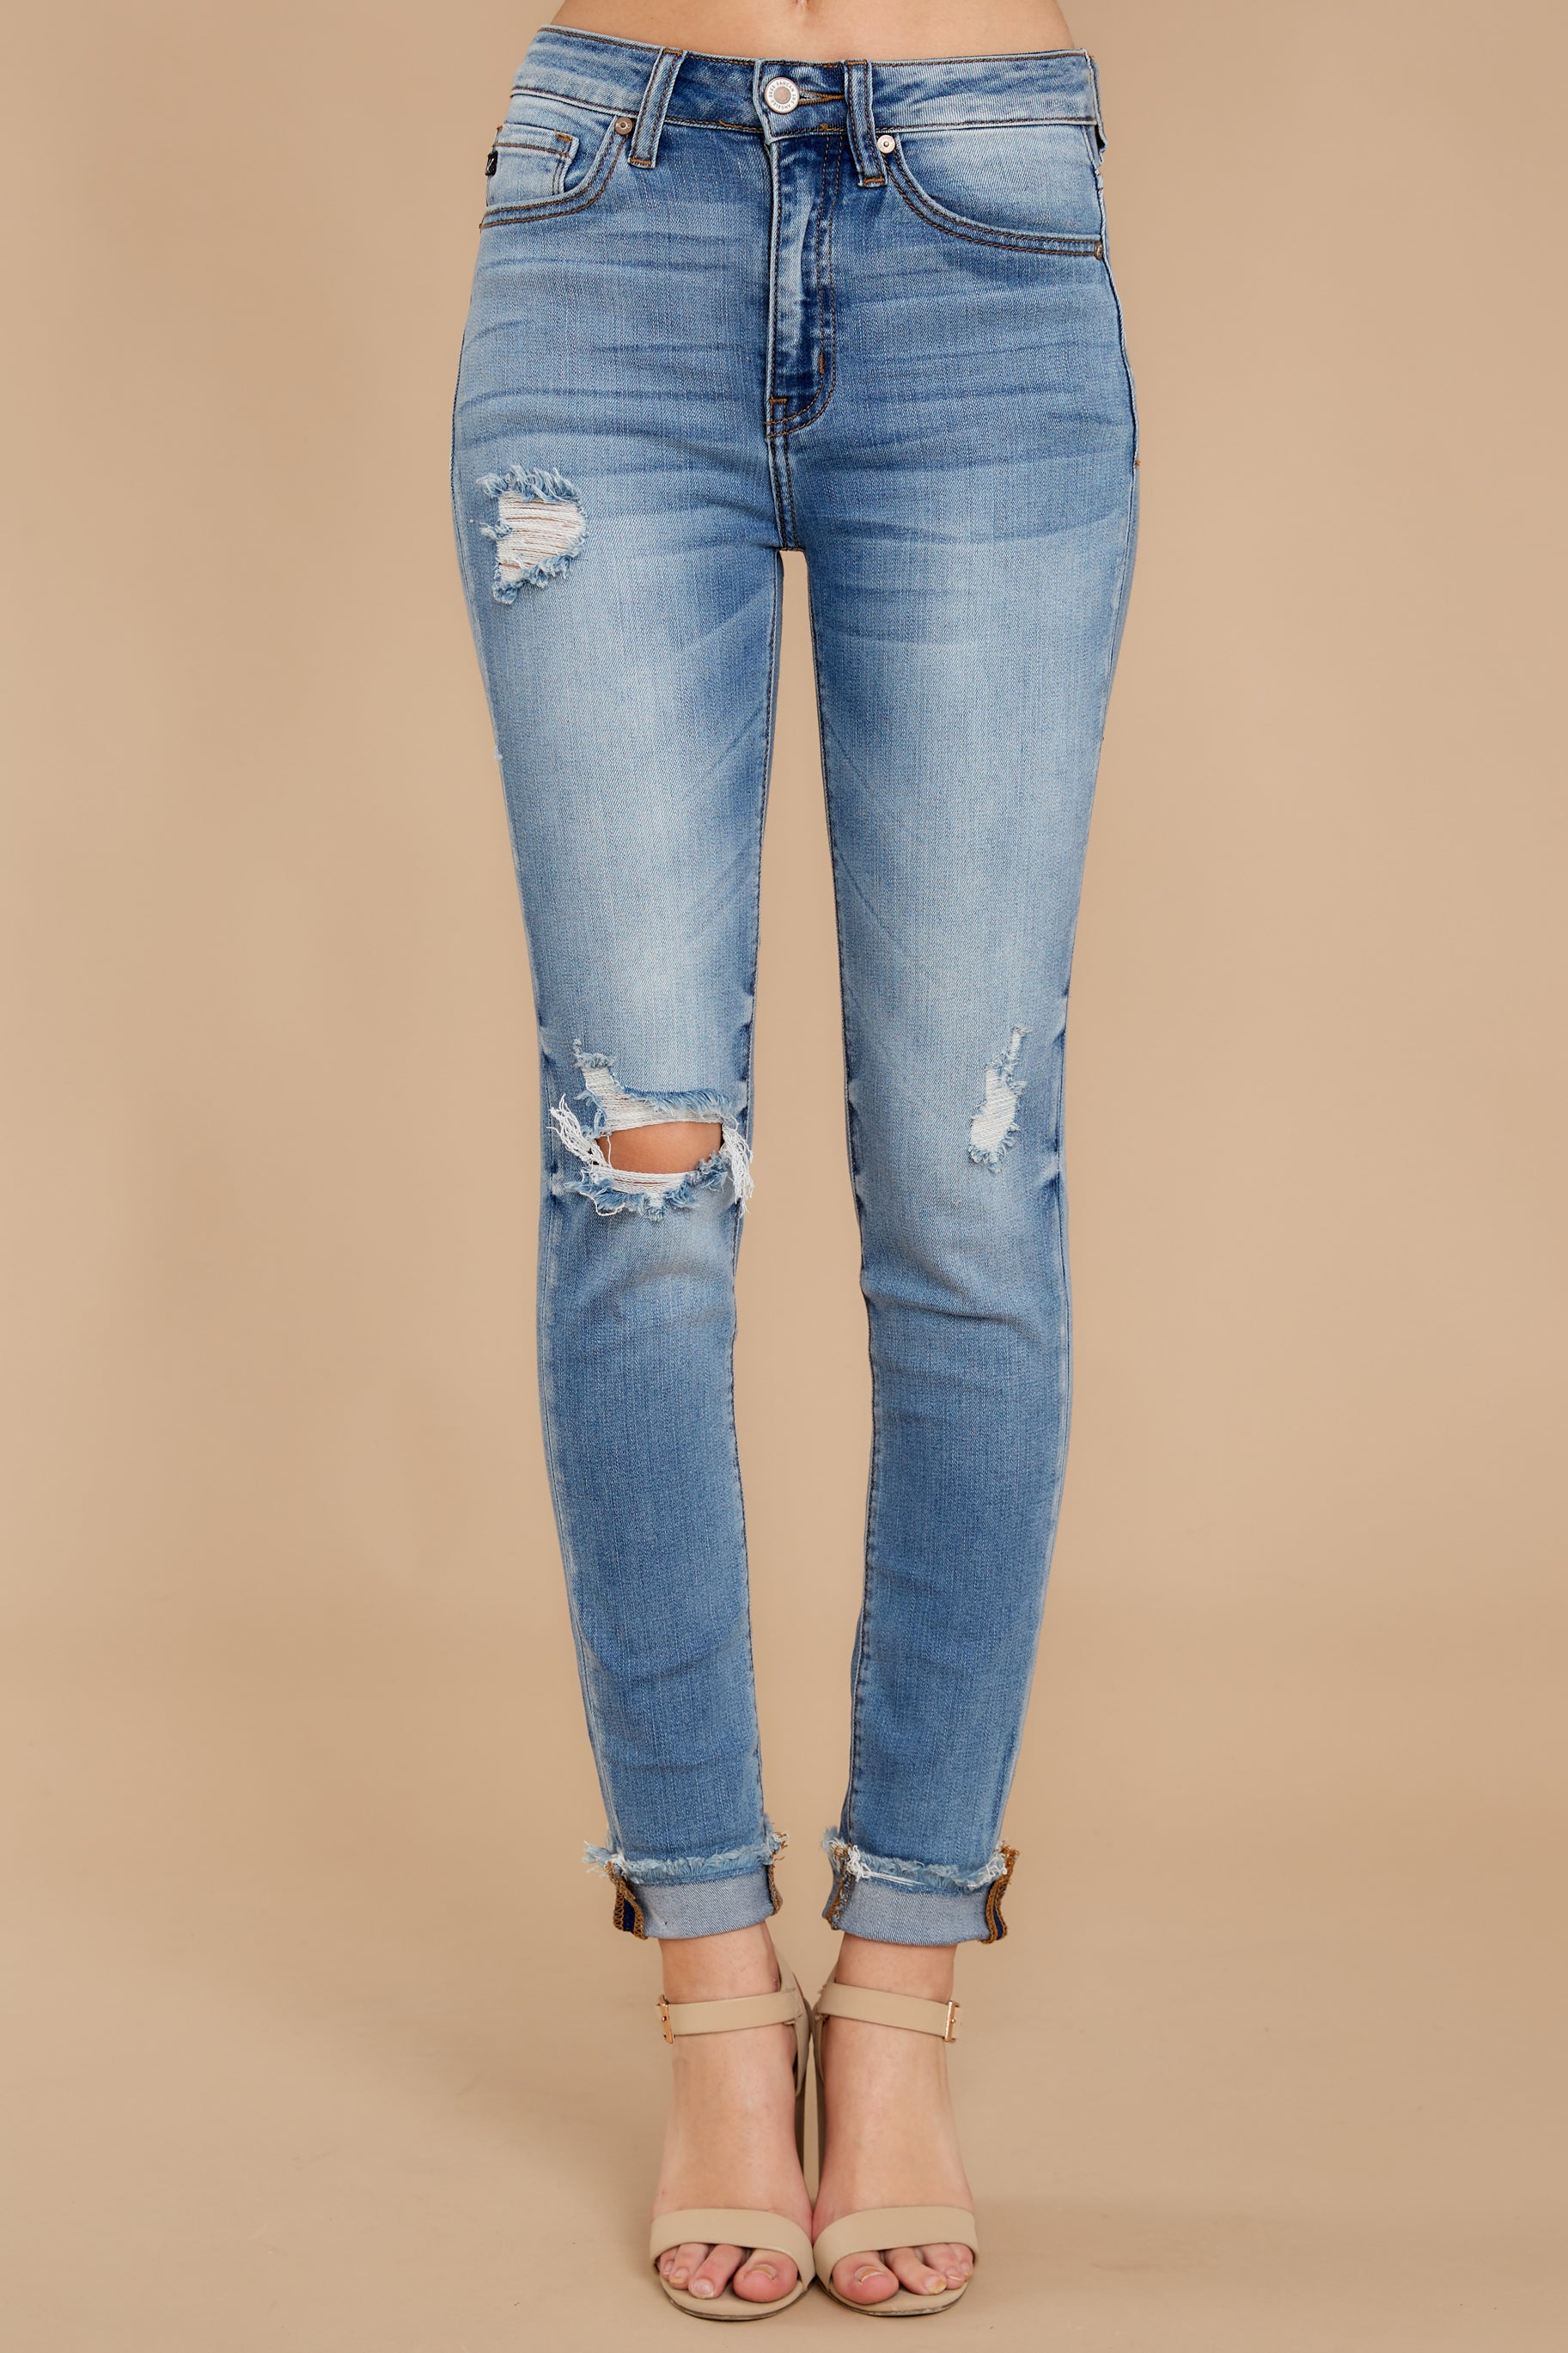 2 Find Me In LA Light Wash Distressed Skinny Jeans at reddress.com